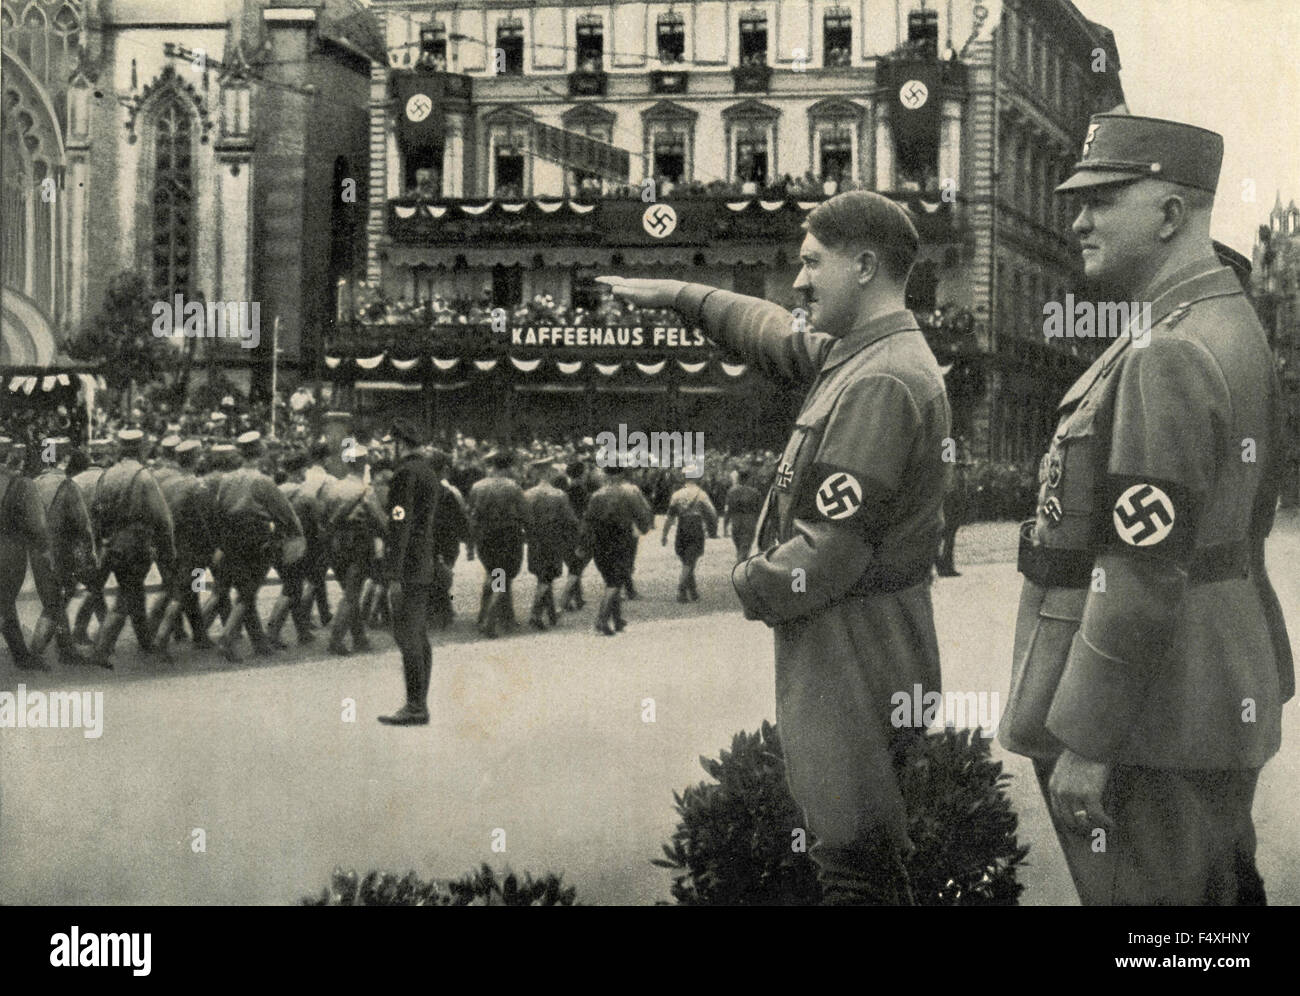 Adolf Hitler during a Nazi military parade in Leipzig, Germany Stock Photo